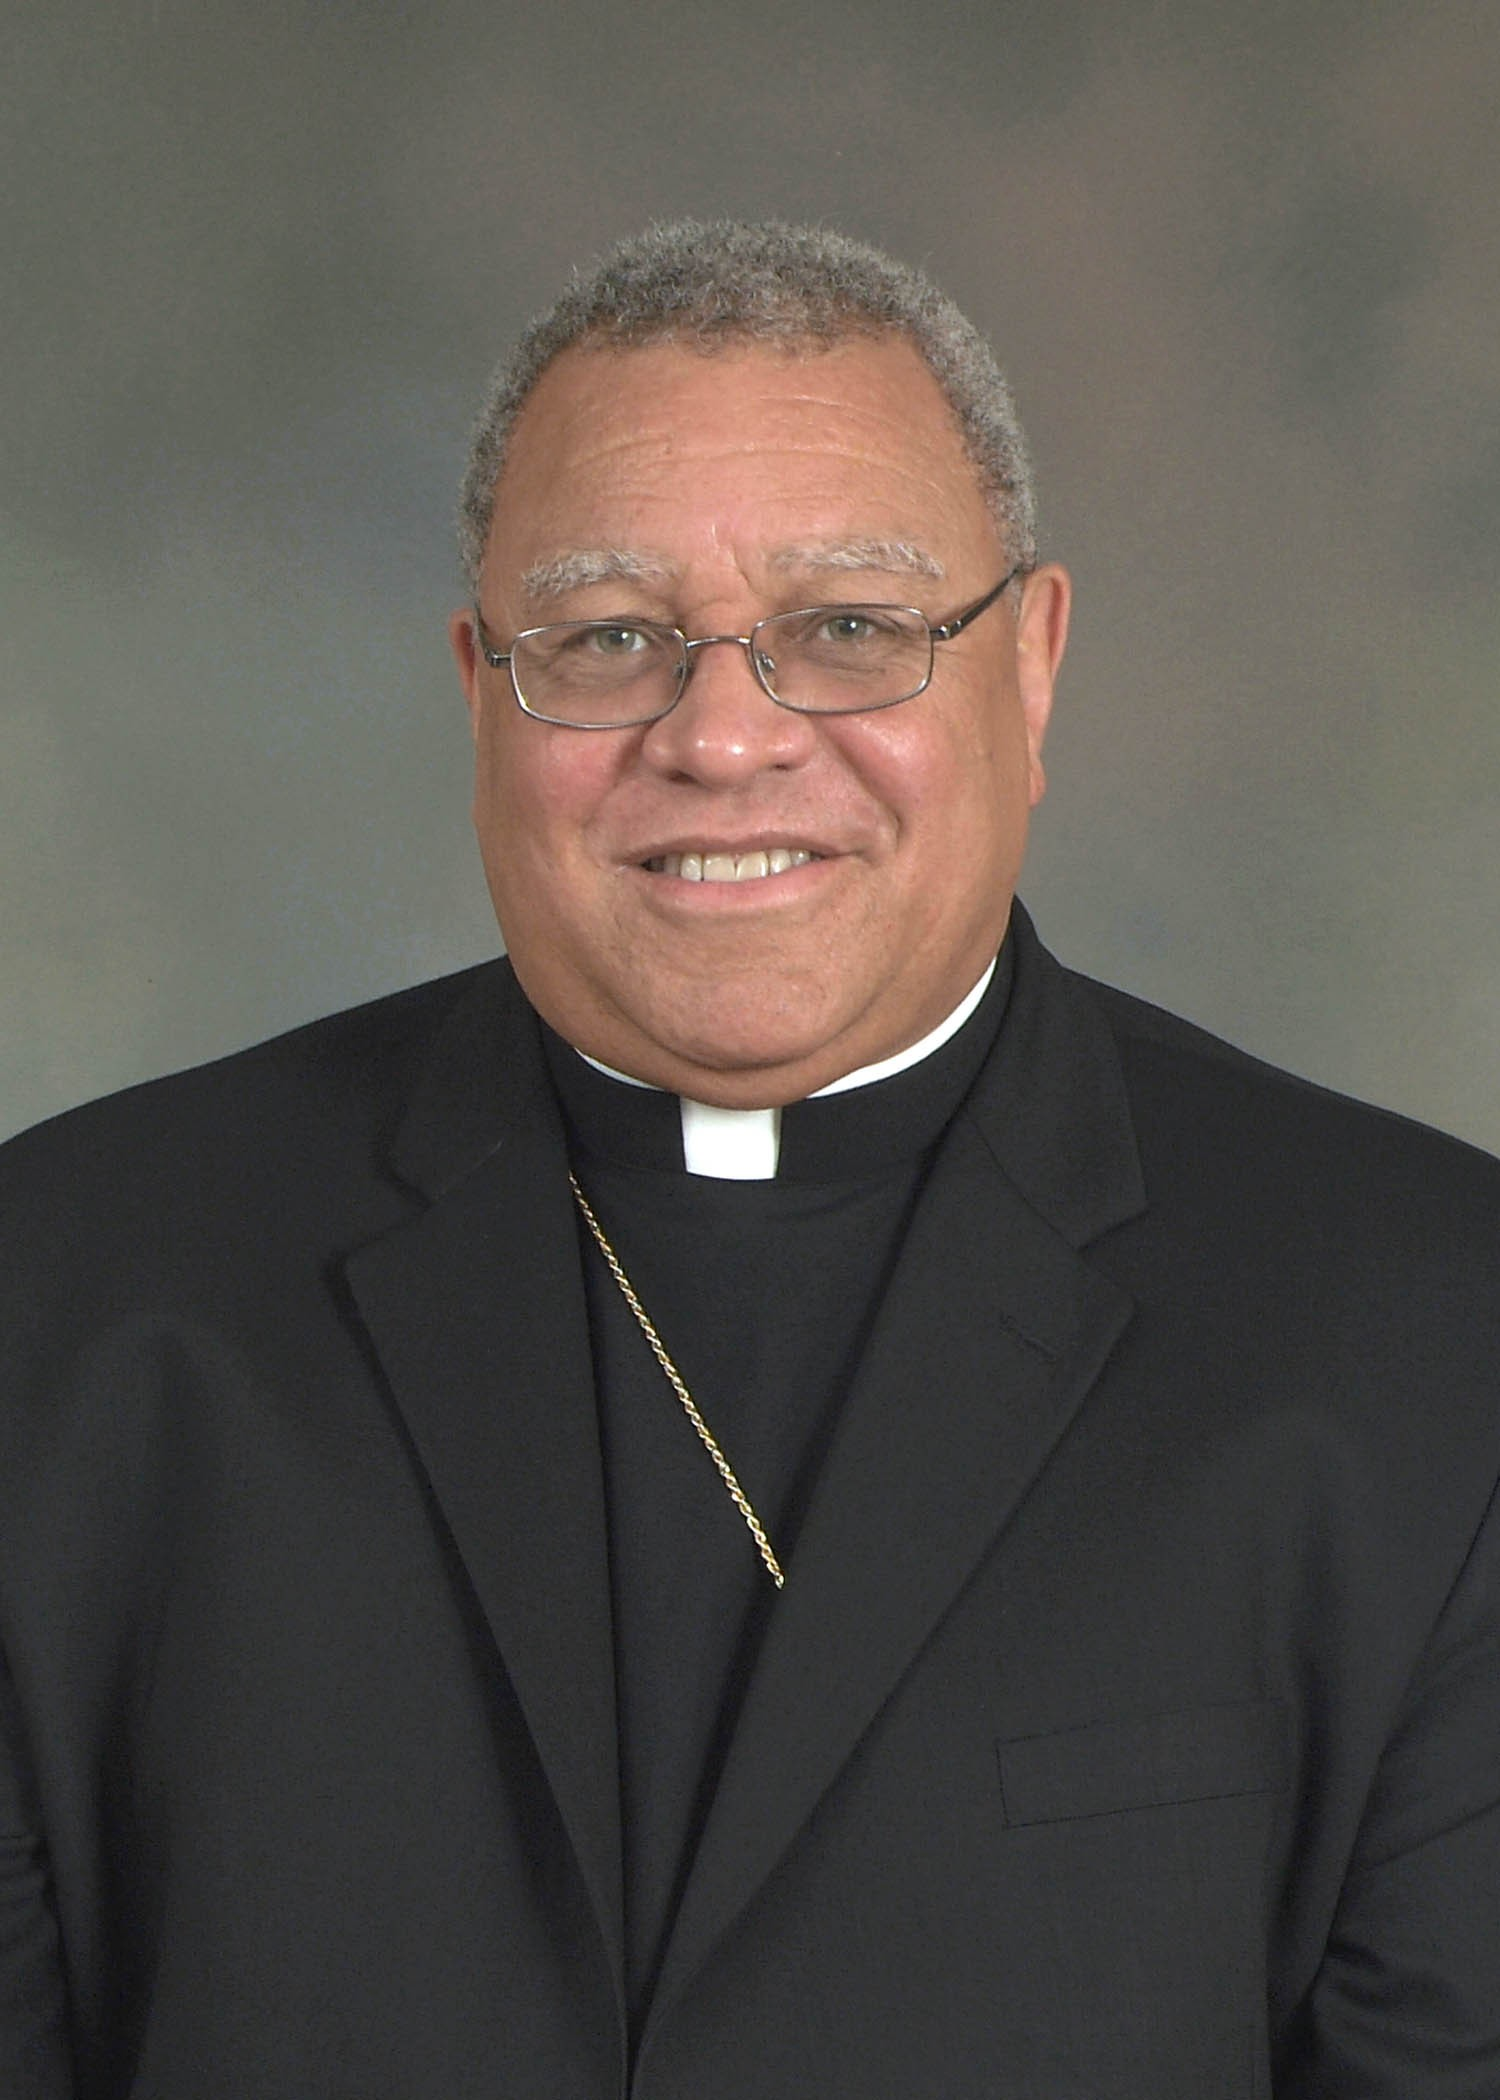 NCEA Board President to Serve as Chairman on USCCB's Committee on Catholic Education